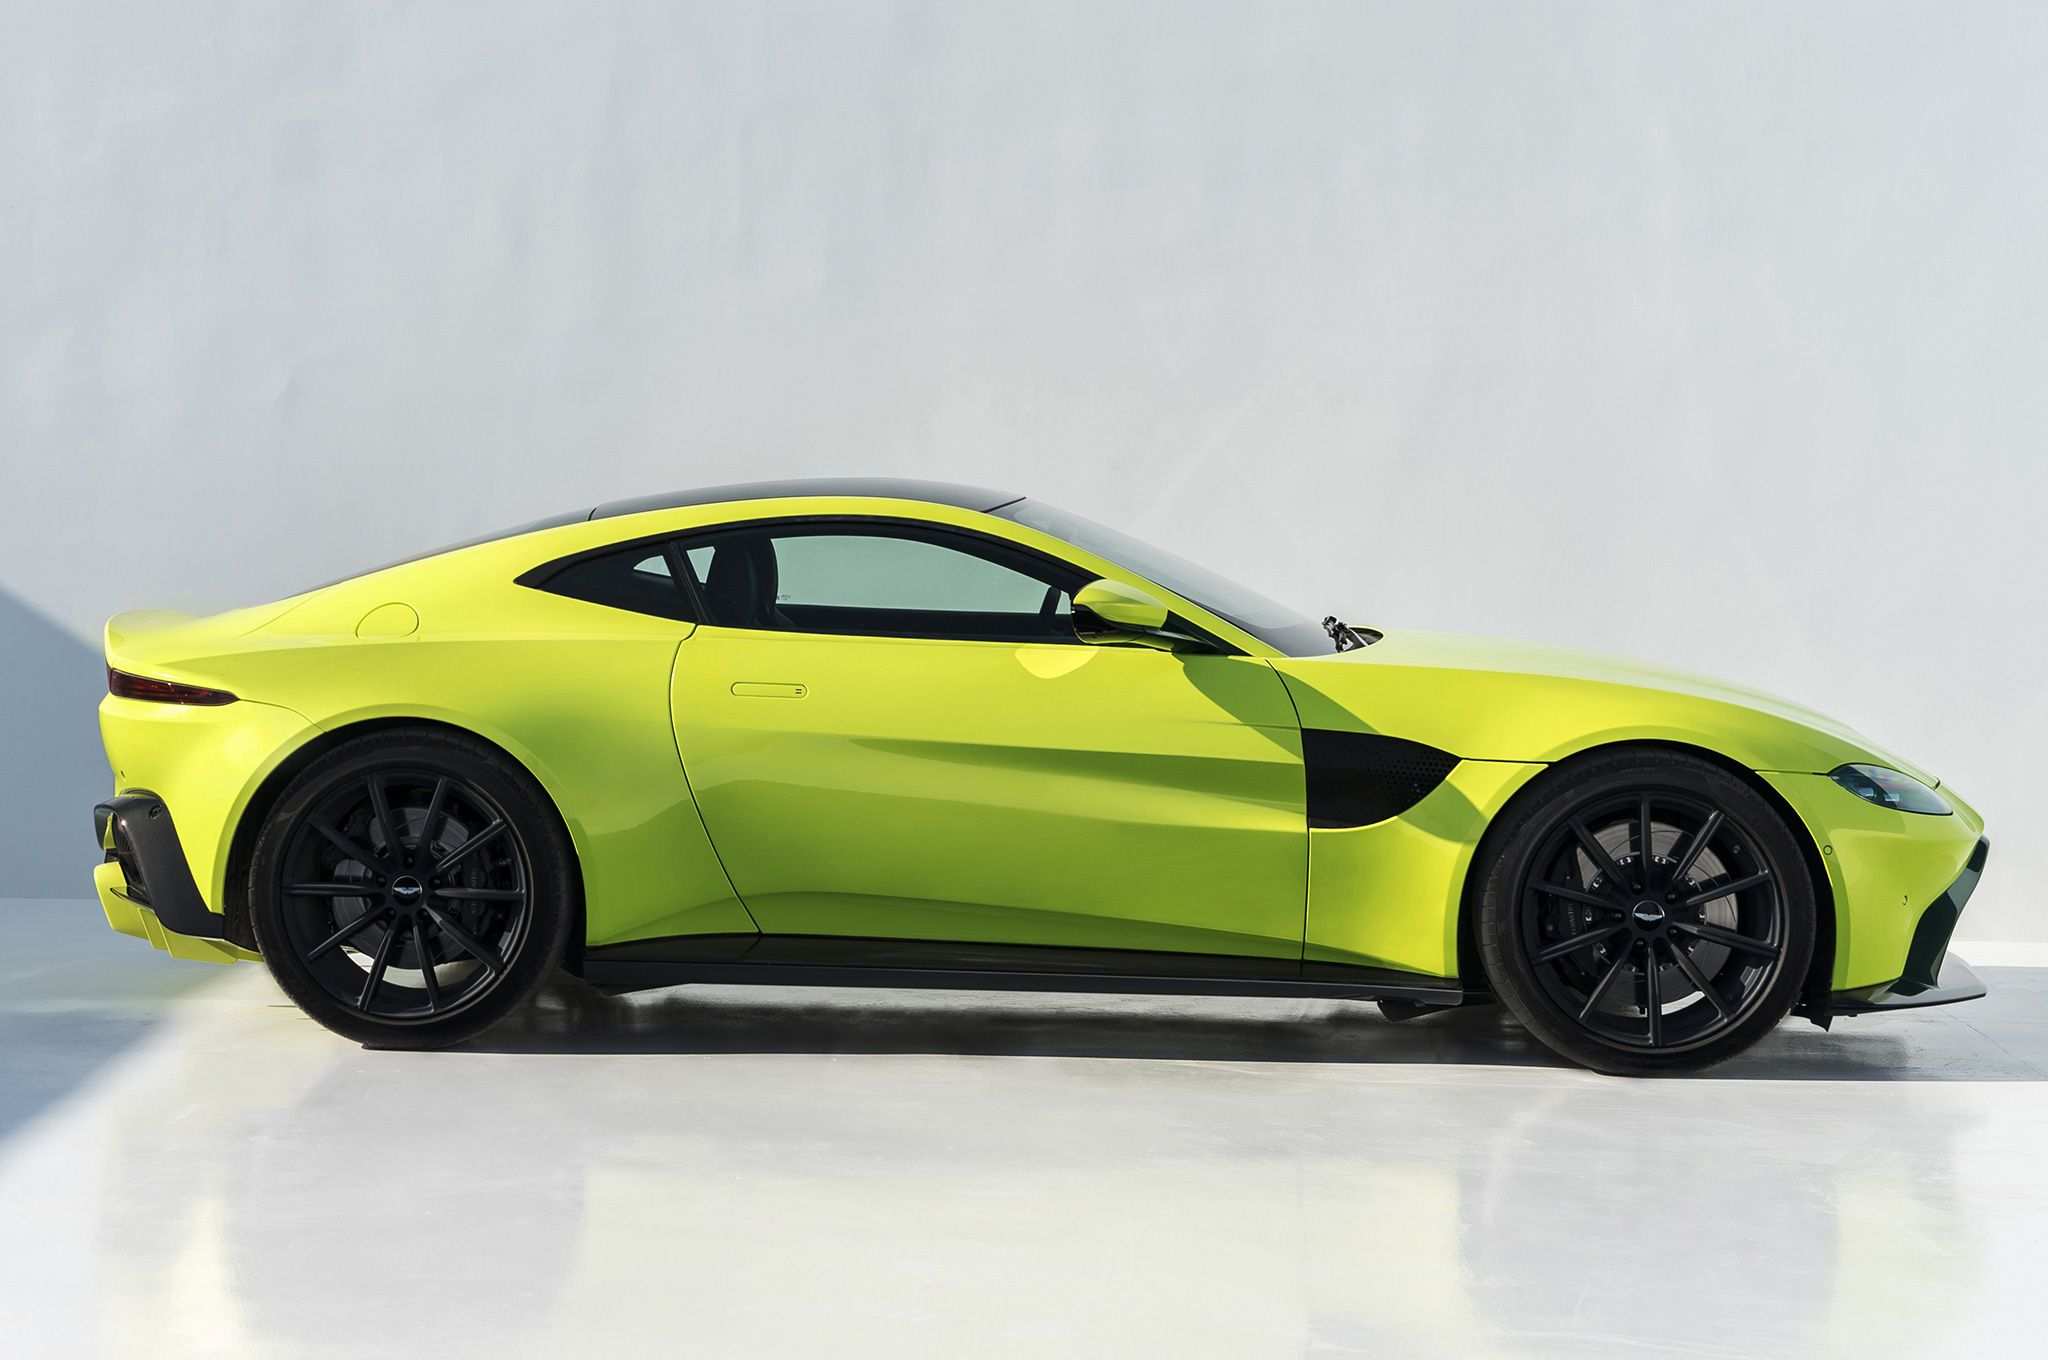 aston martin vantage 2018 side view. 2019-Aston-Martin-Vantage-side-view-against-wall. Aston Martin Vantage 2018 Side View I